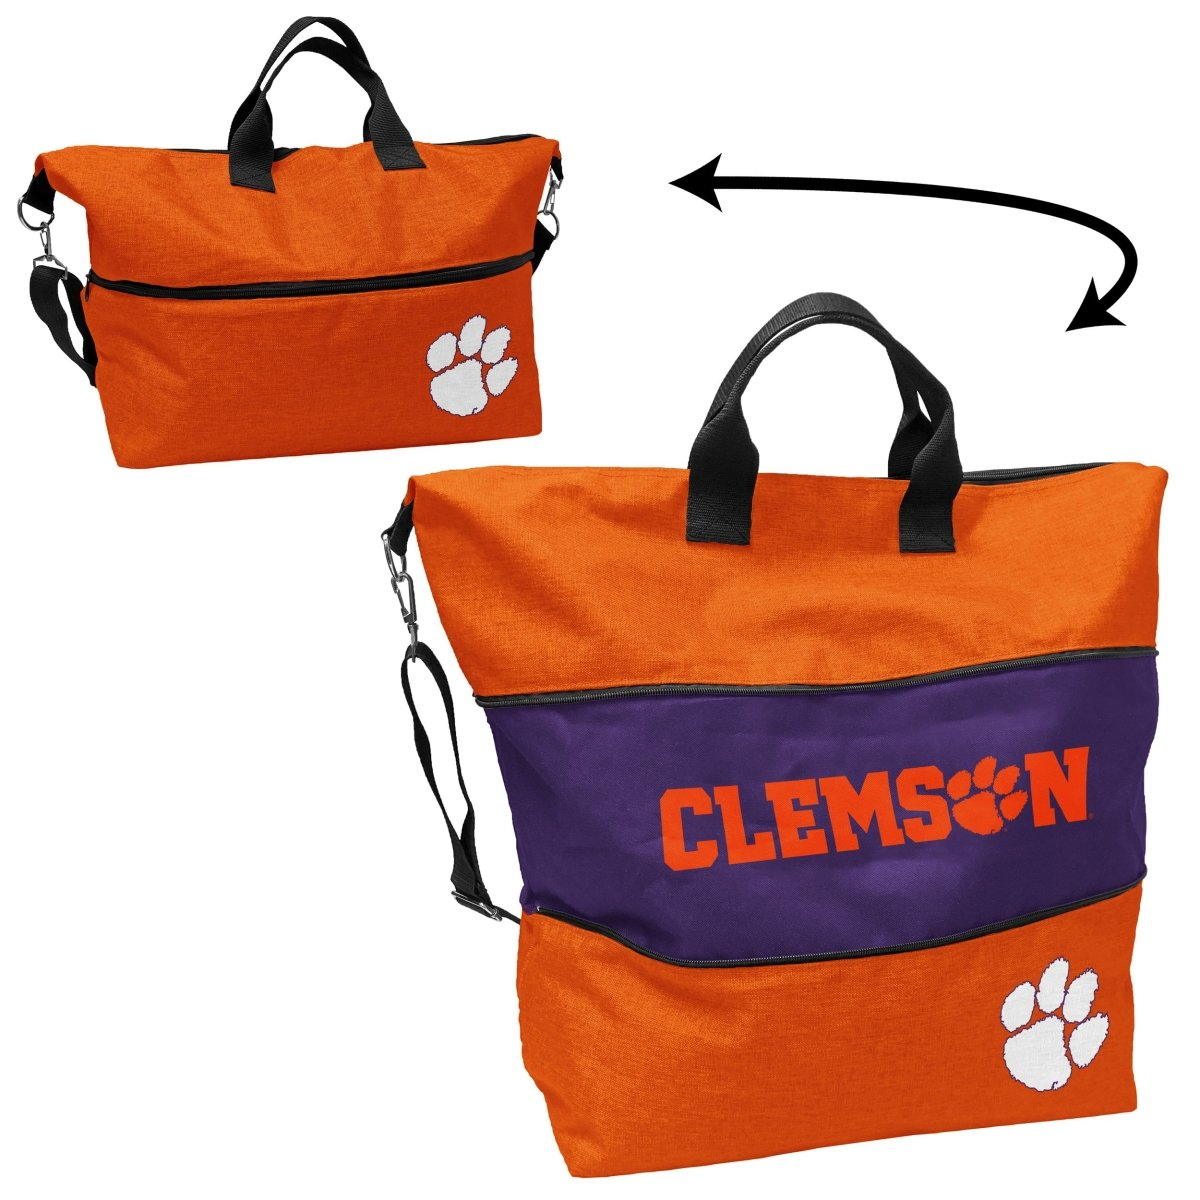 Clemson Crosshatch Expandable Tote Bag - Mr. Knickerbocker